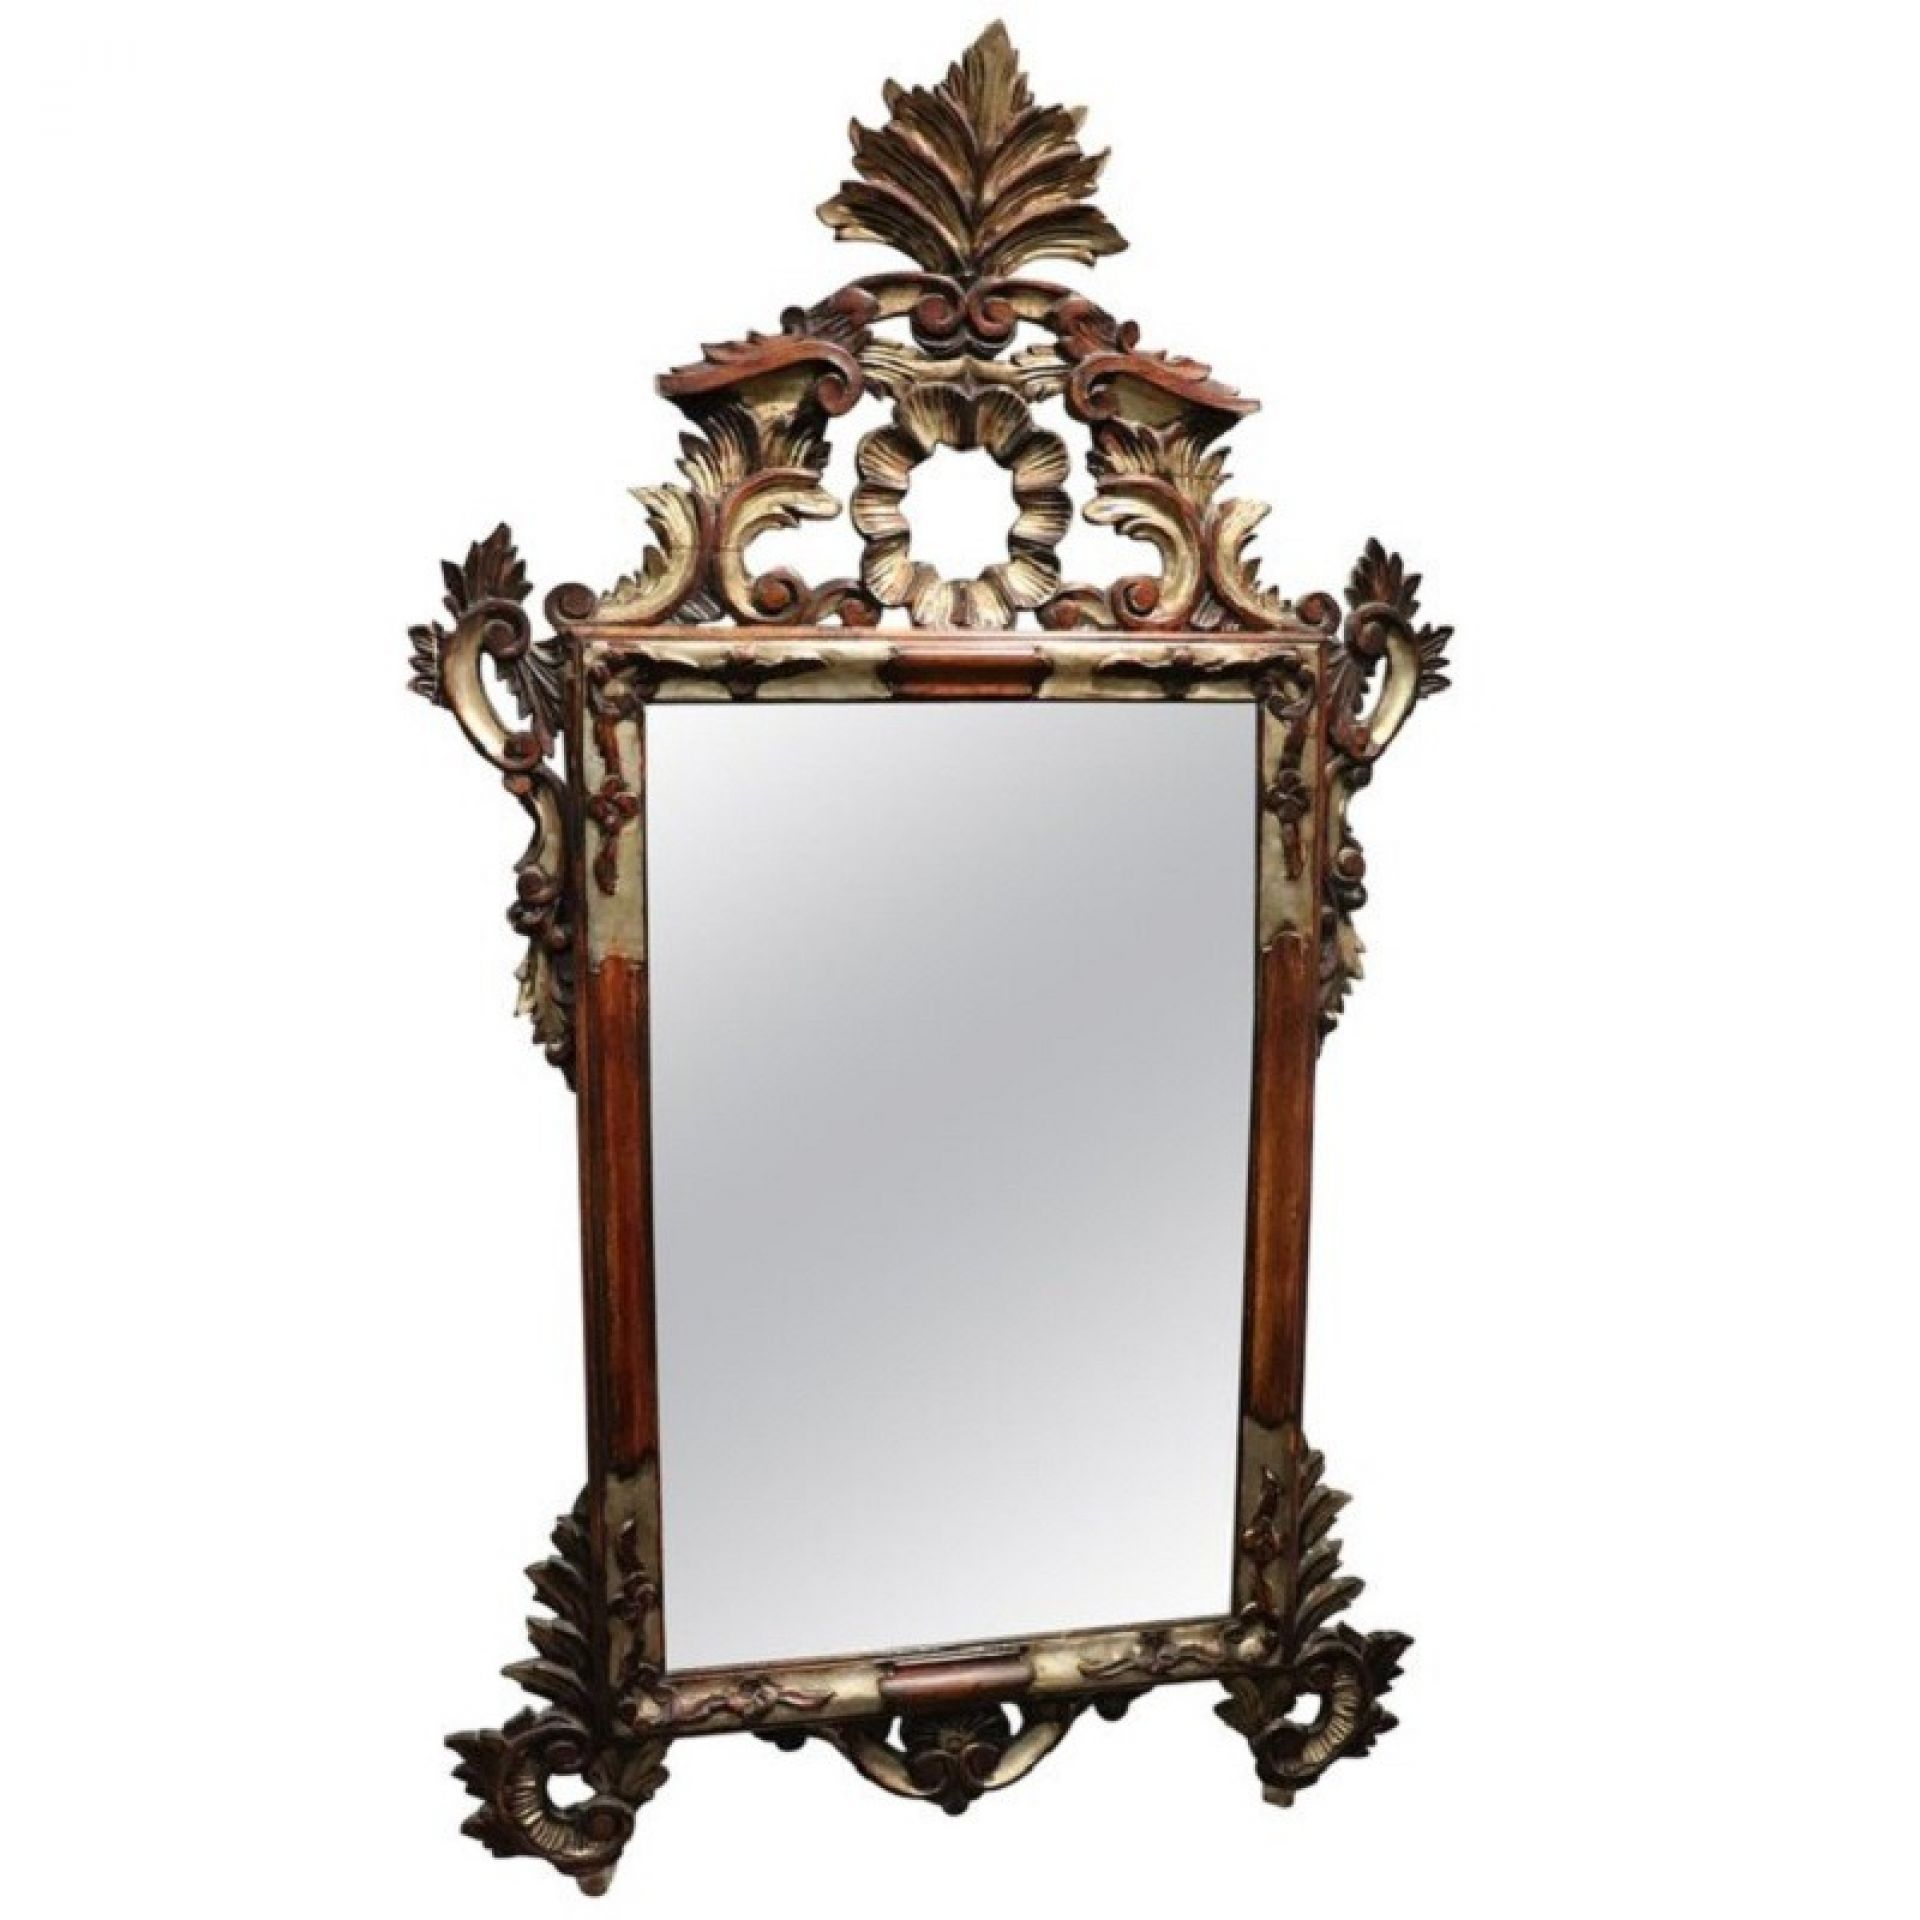 20th Century Italian Louis XV Style Silvered Wood Wall Mirror